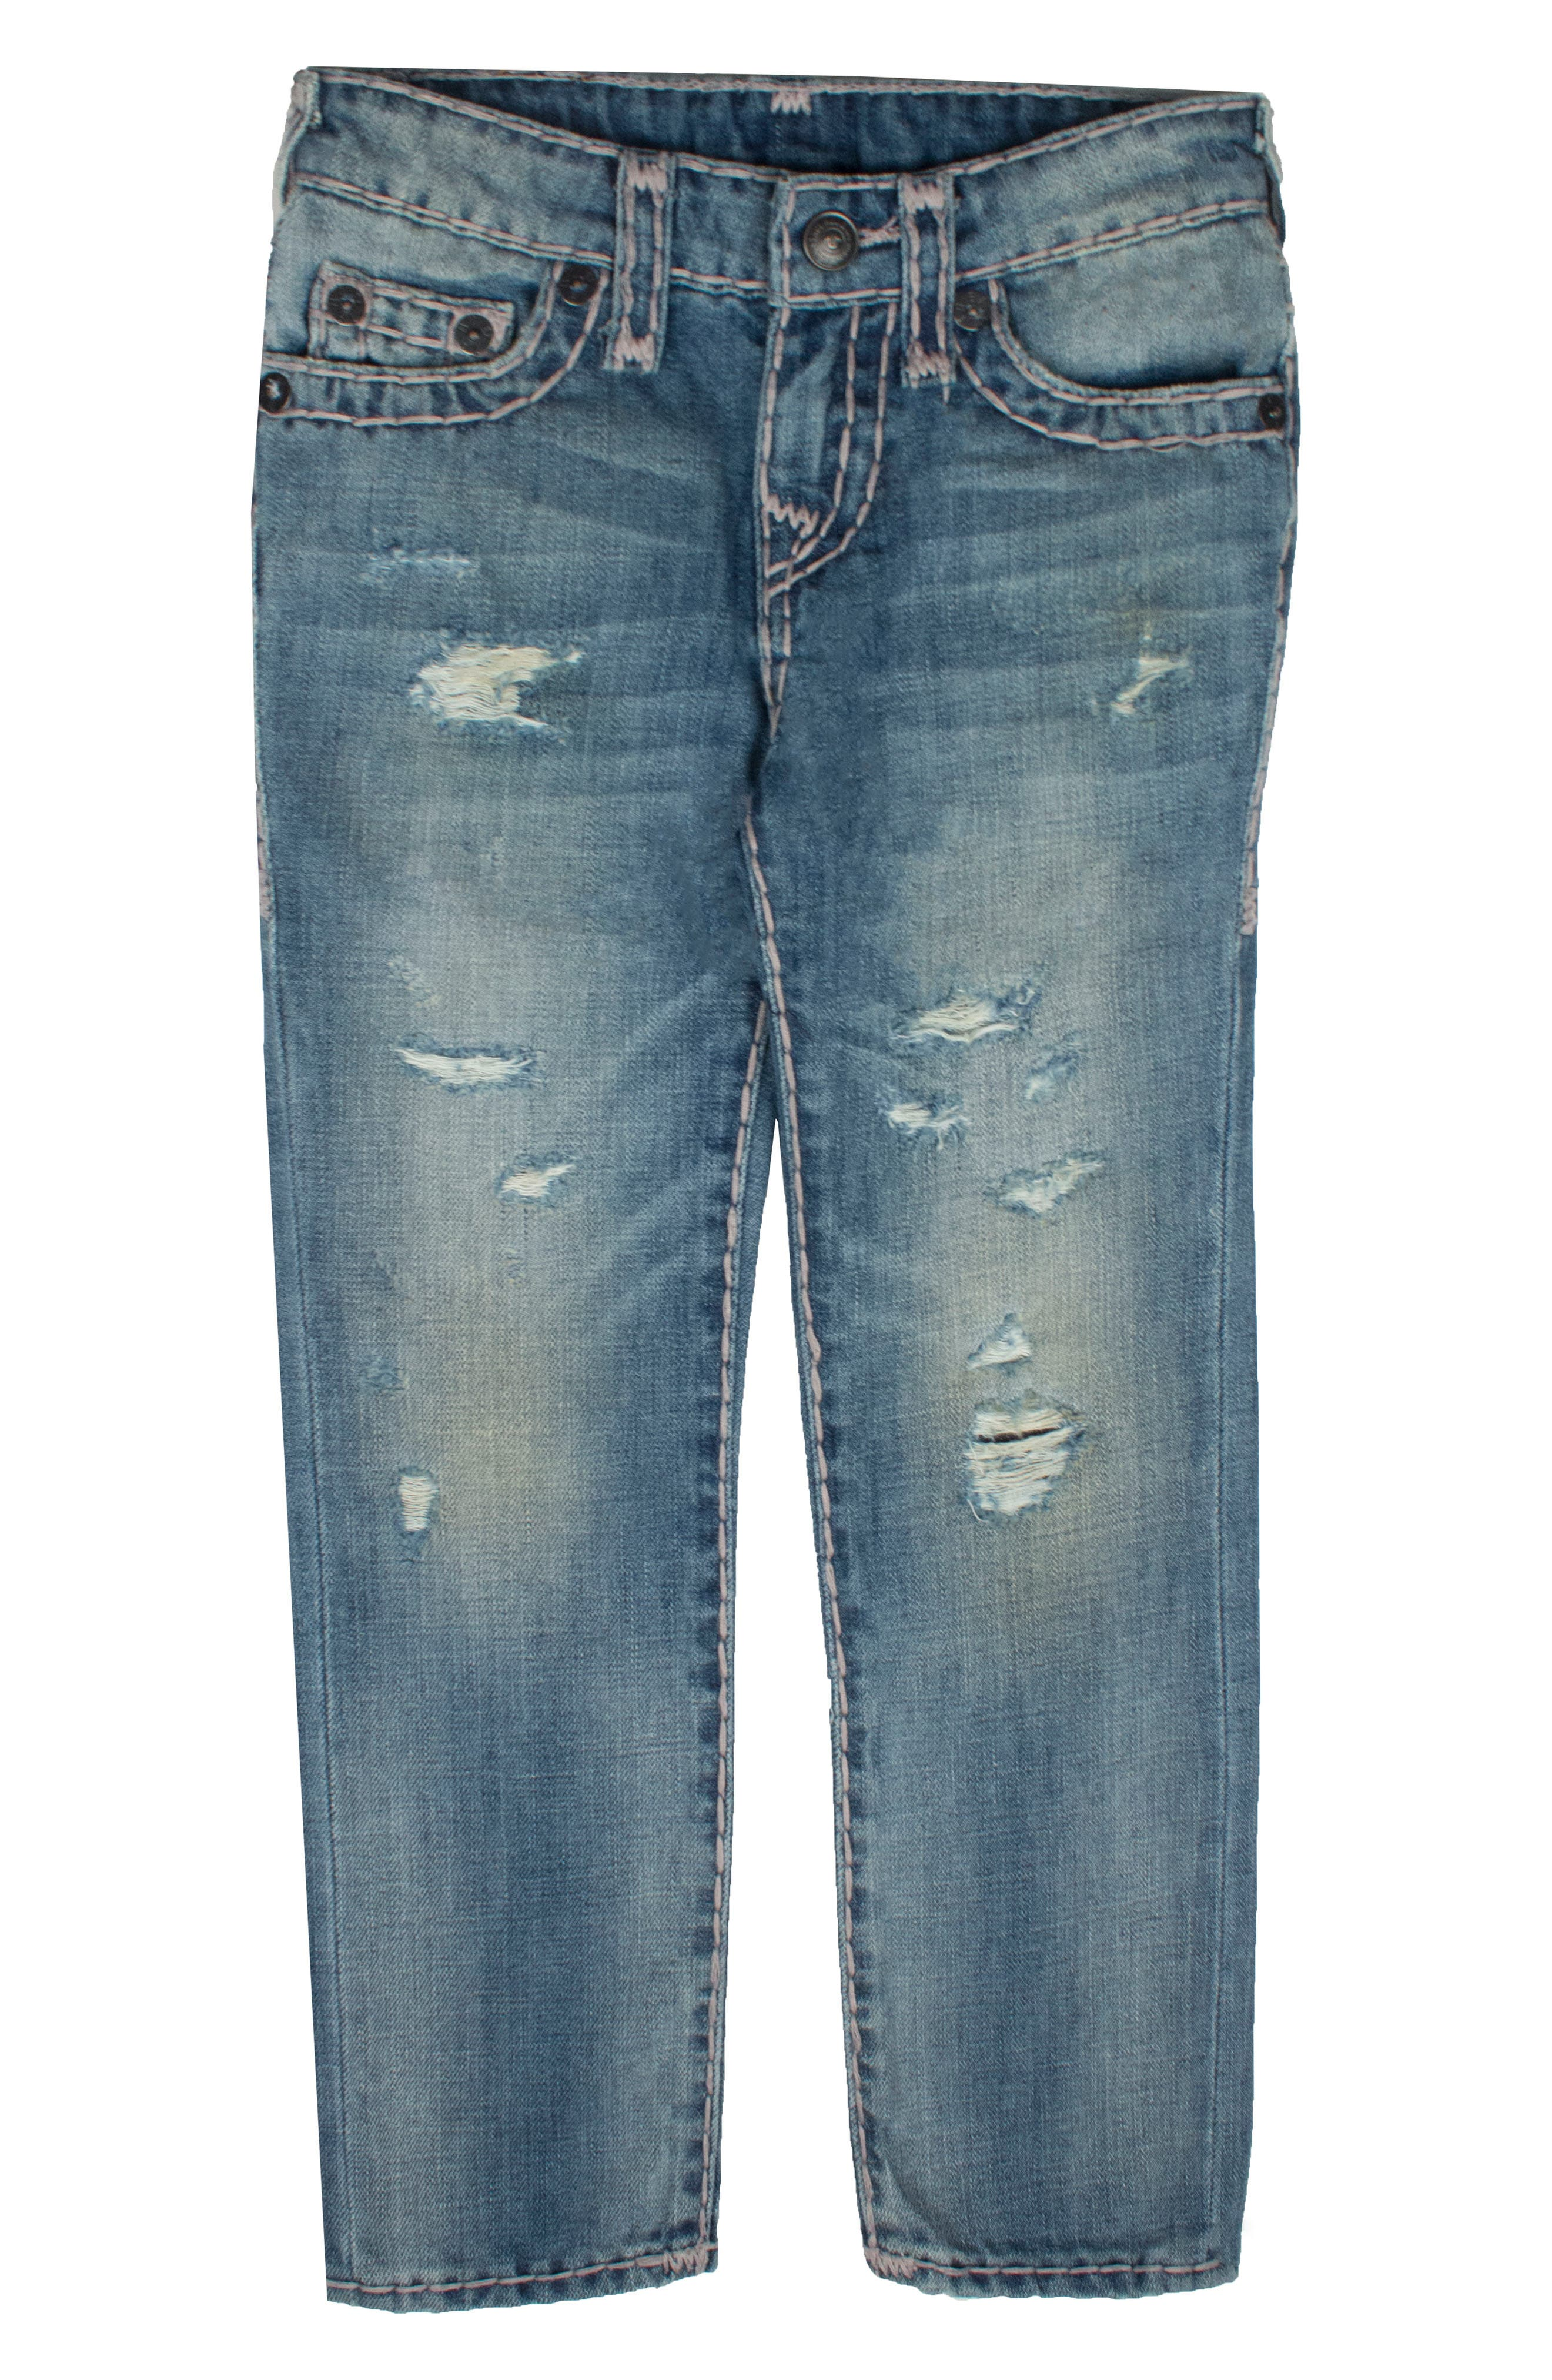 True Religion Brand Jeans Geno Super T Straight Leg Jeans (Big Boys)